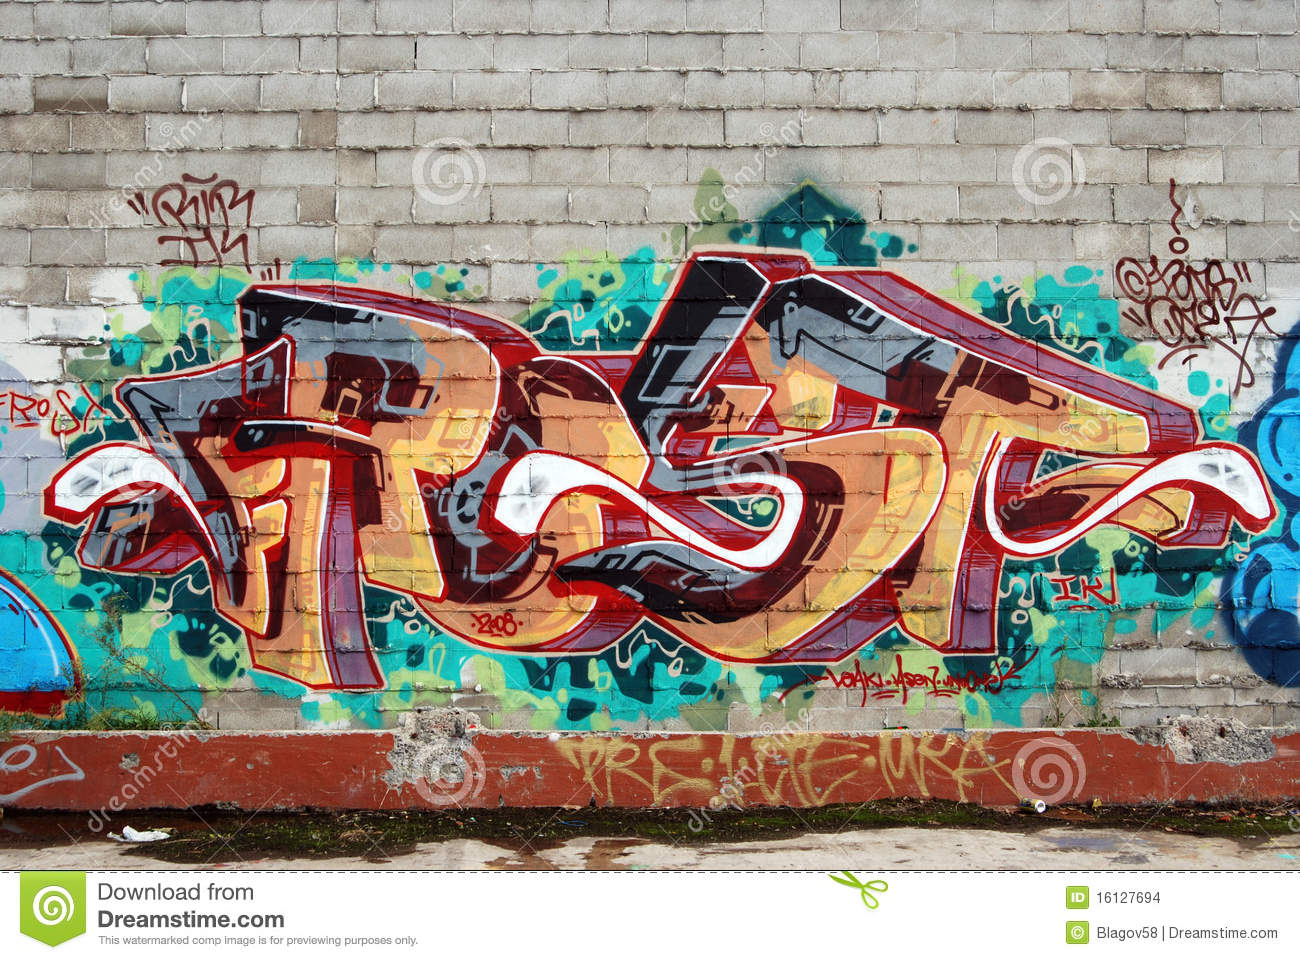 An Old Brick Wall Vandalized With Graffiti Street Art Urban Culture Abstract Background